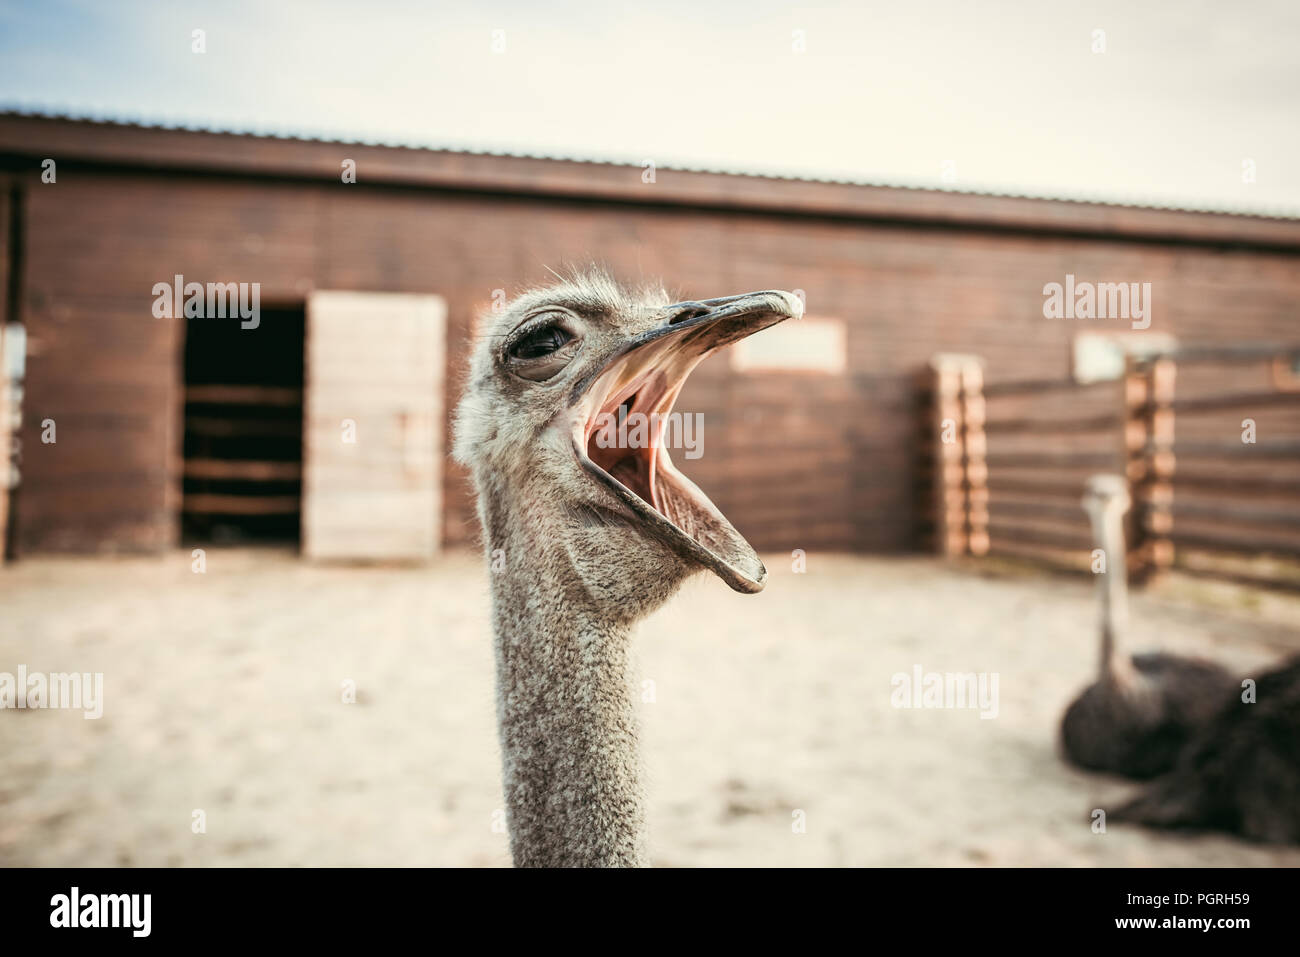 closeup shot of yawning ostrich in corral at zoo - Stock Image